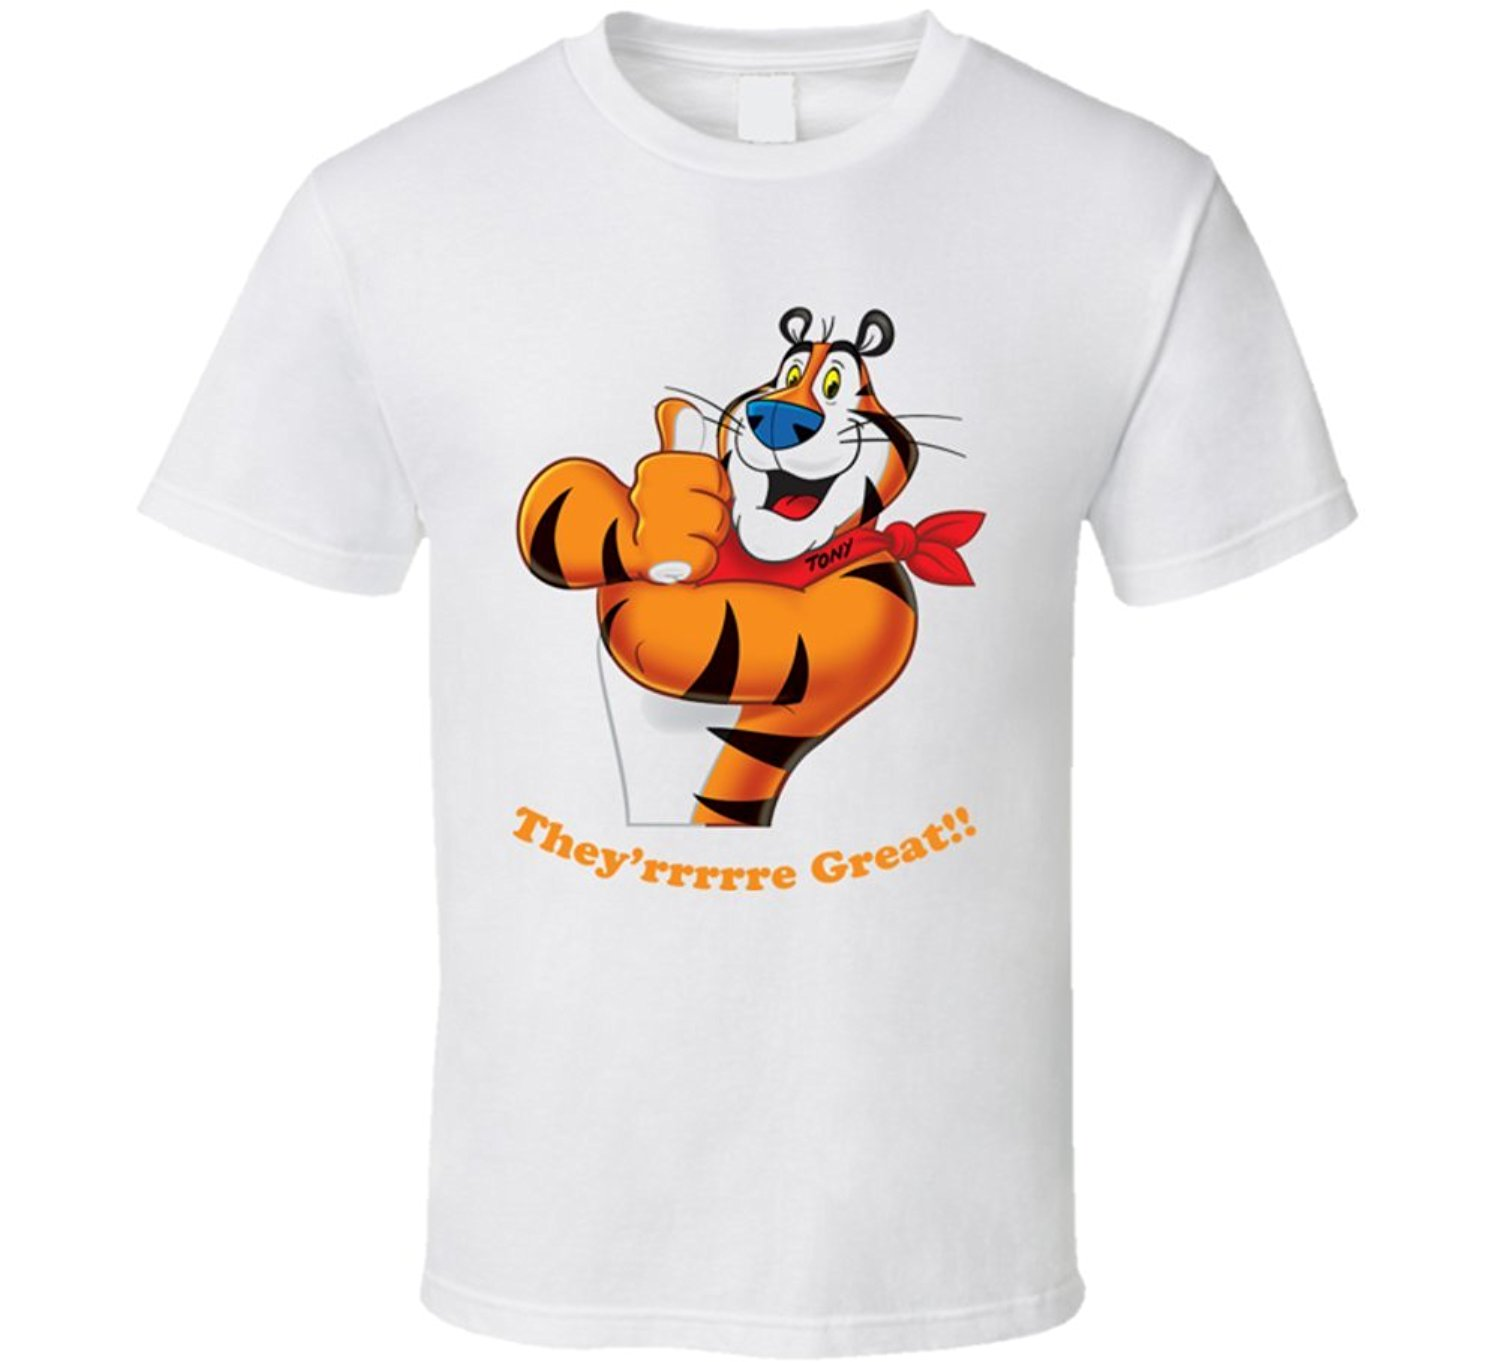 Tony the Tiger Cereal Character T Shirt